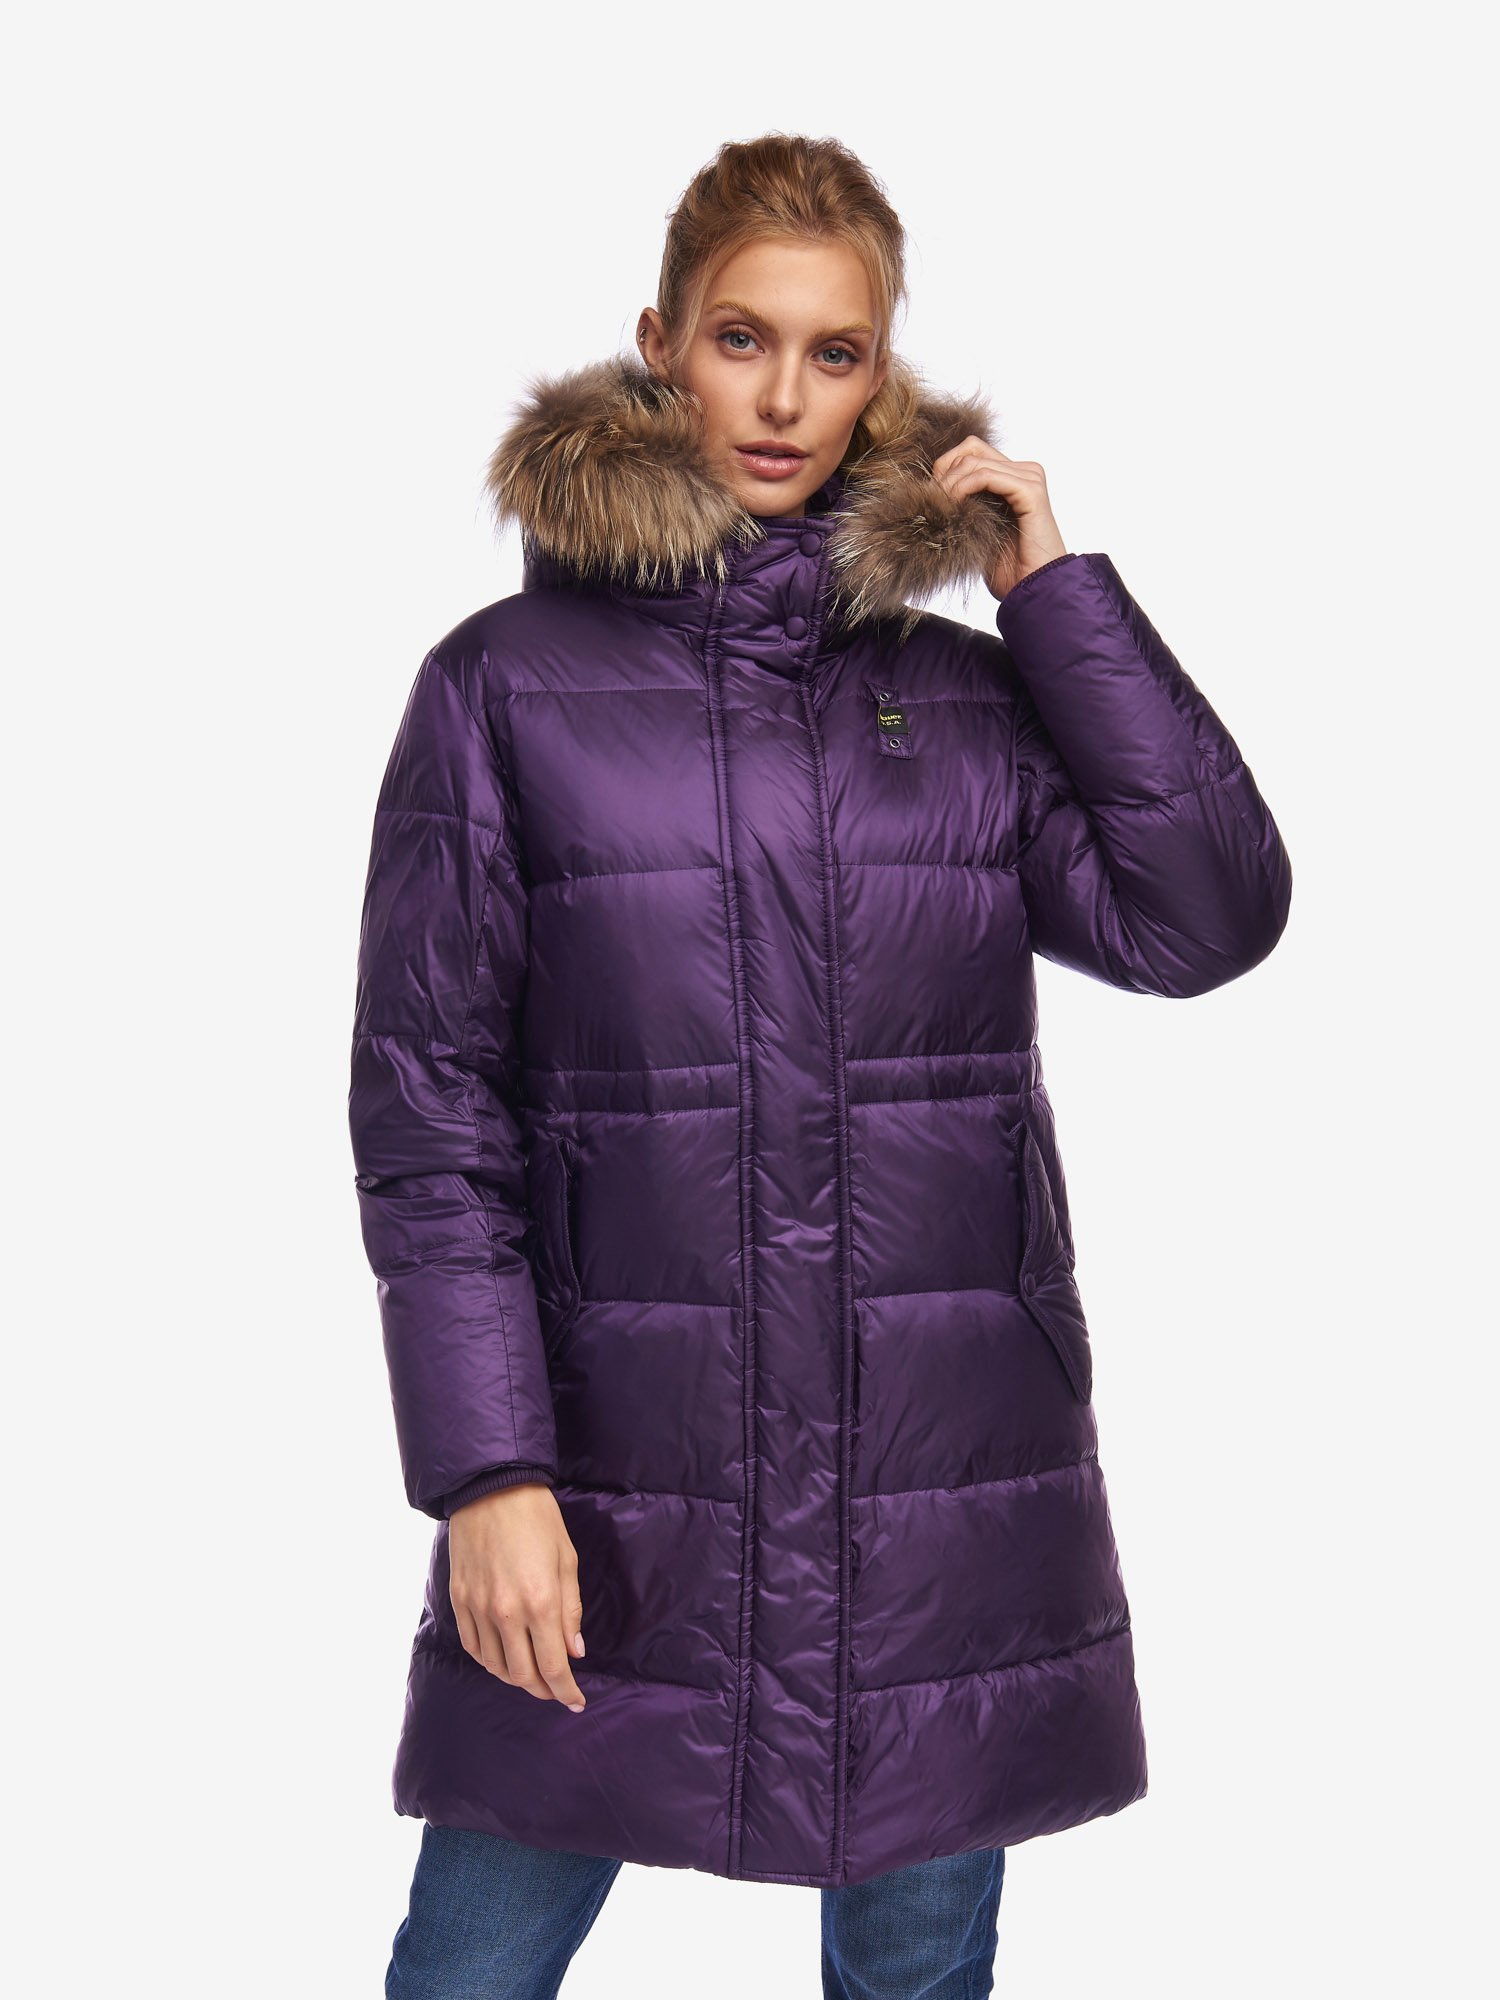 Blauer - WELLS LONG DOWN JACKET WITH FUR TRIM - Purple Panse - Blauer